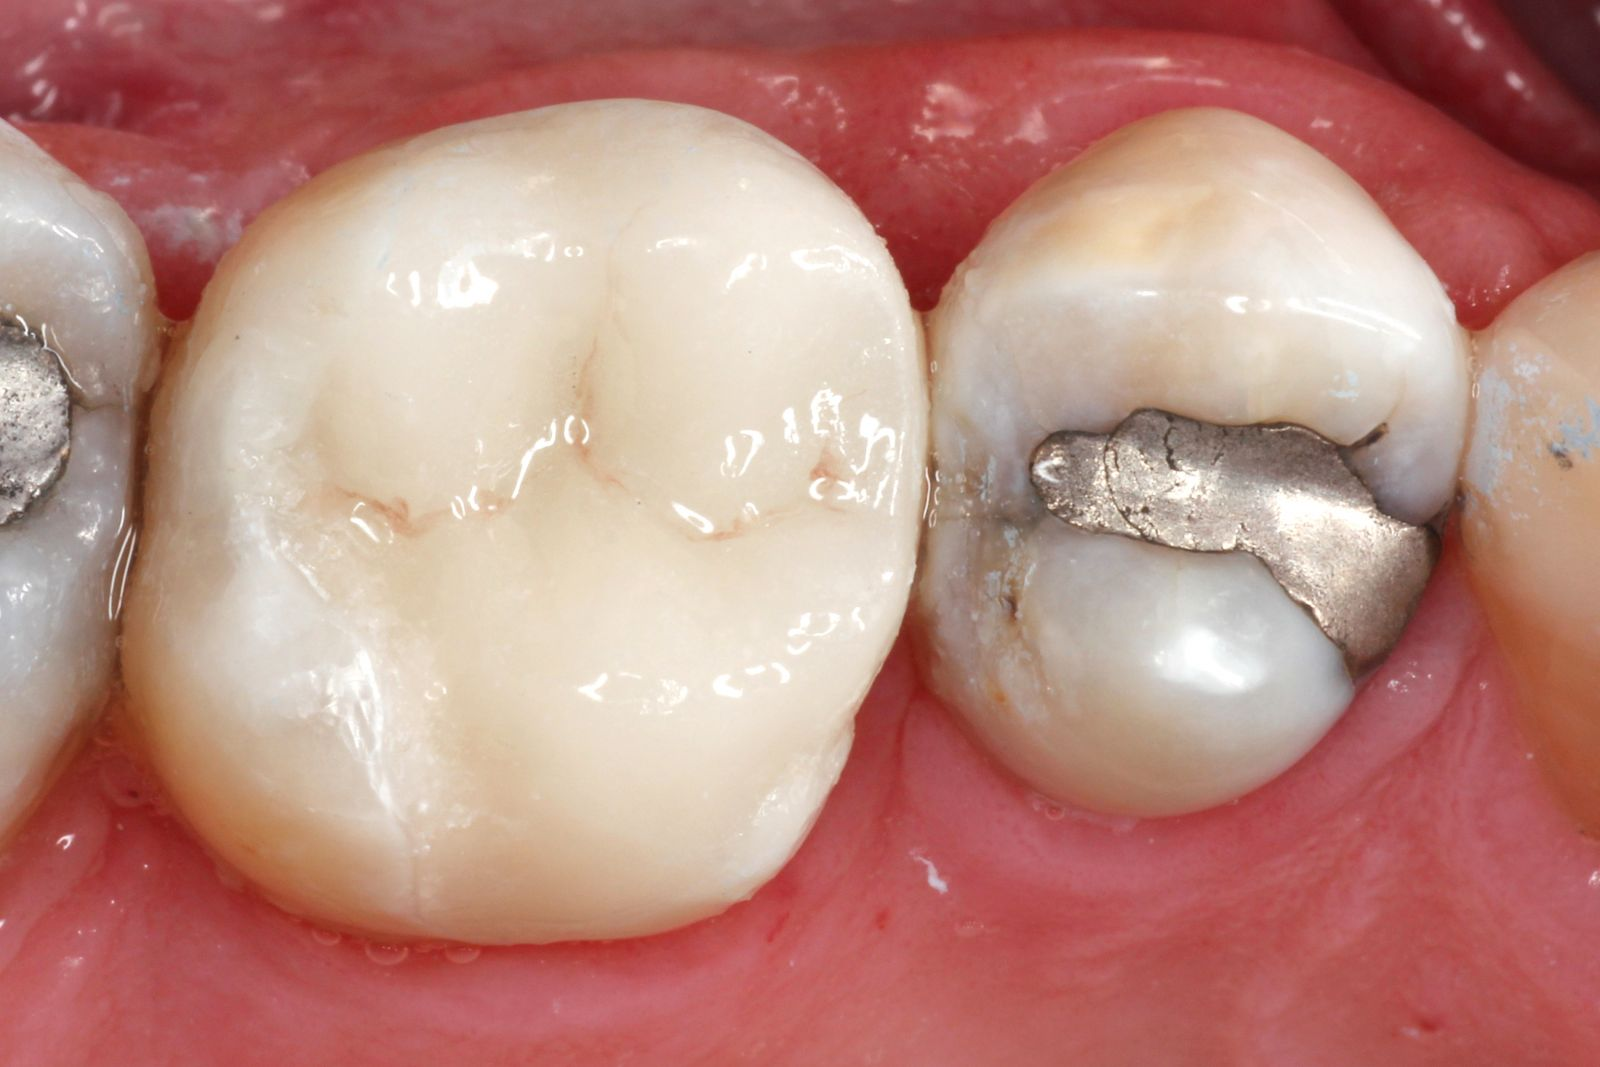 After CEREC